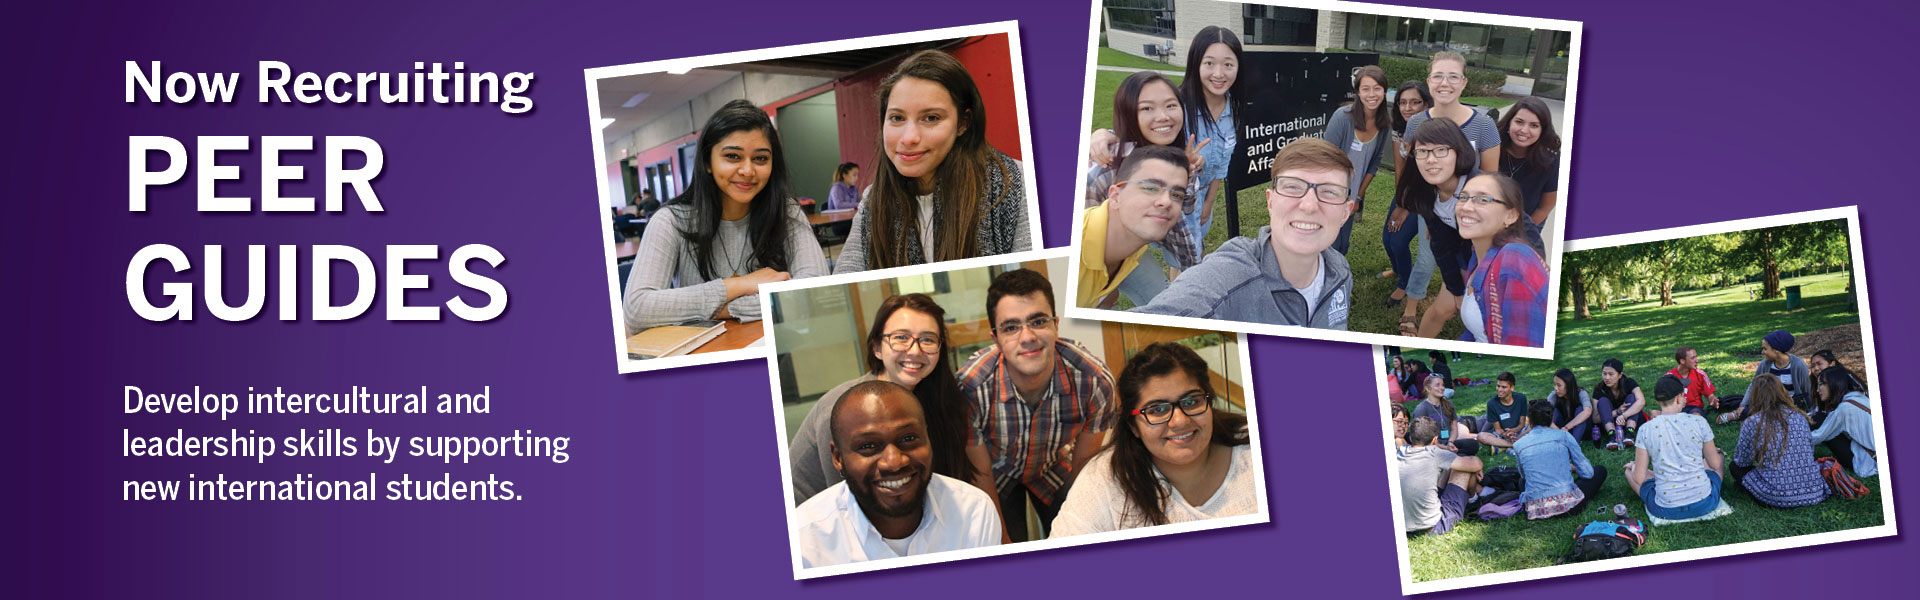 Photos of peer guides with students - ad for recruiting volunteer peer guides